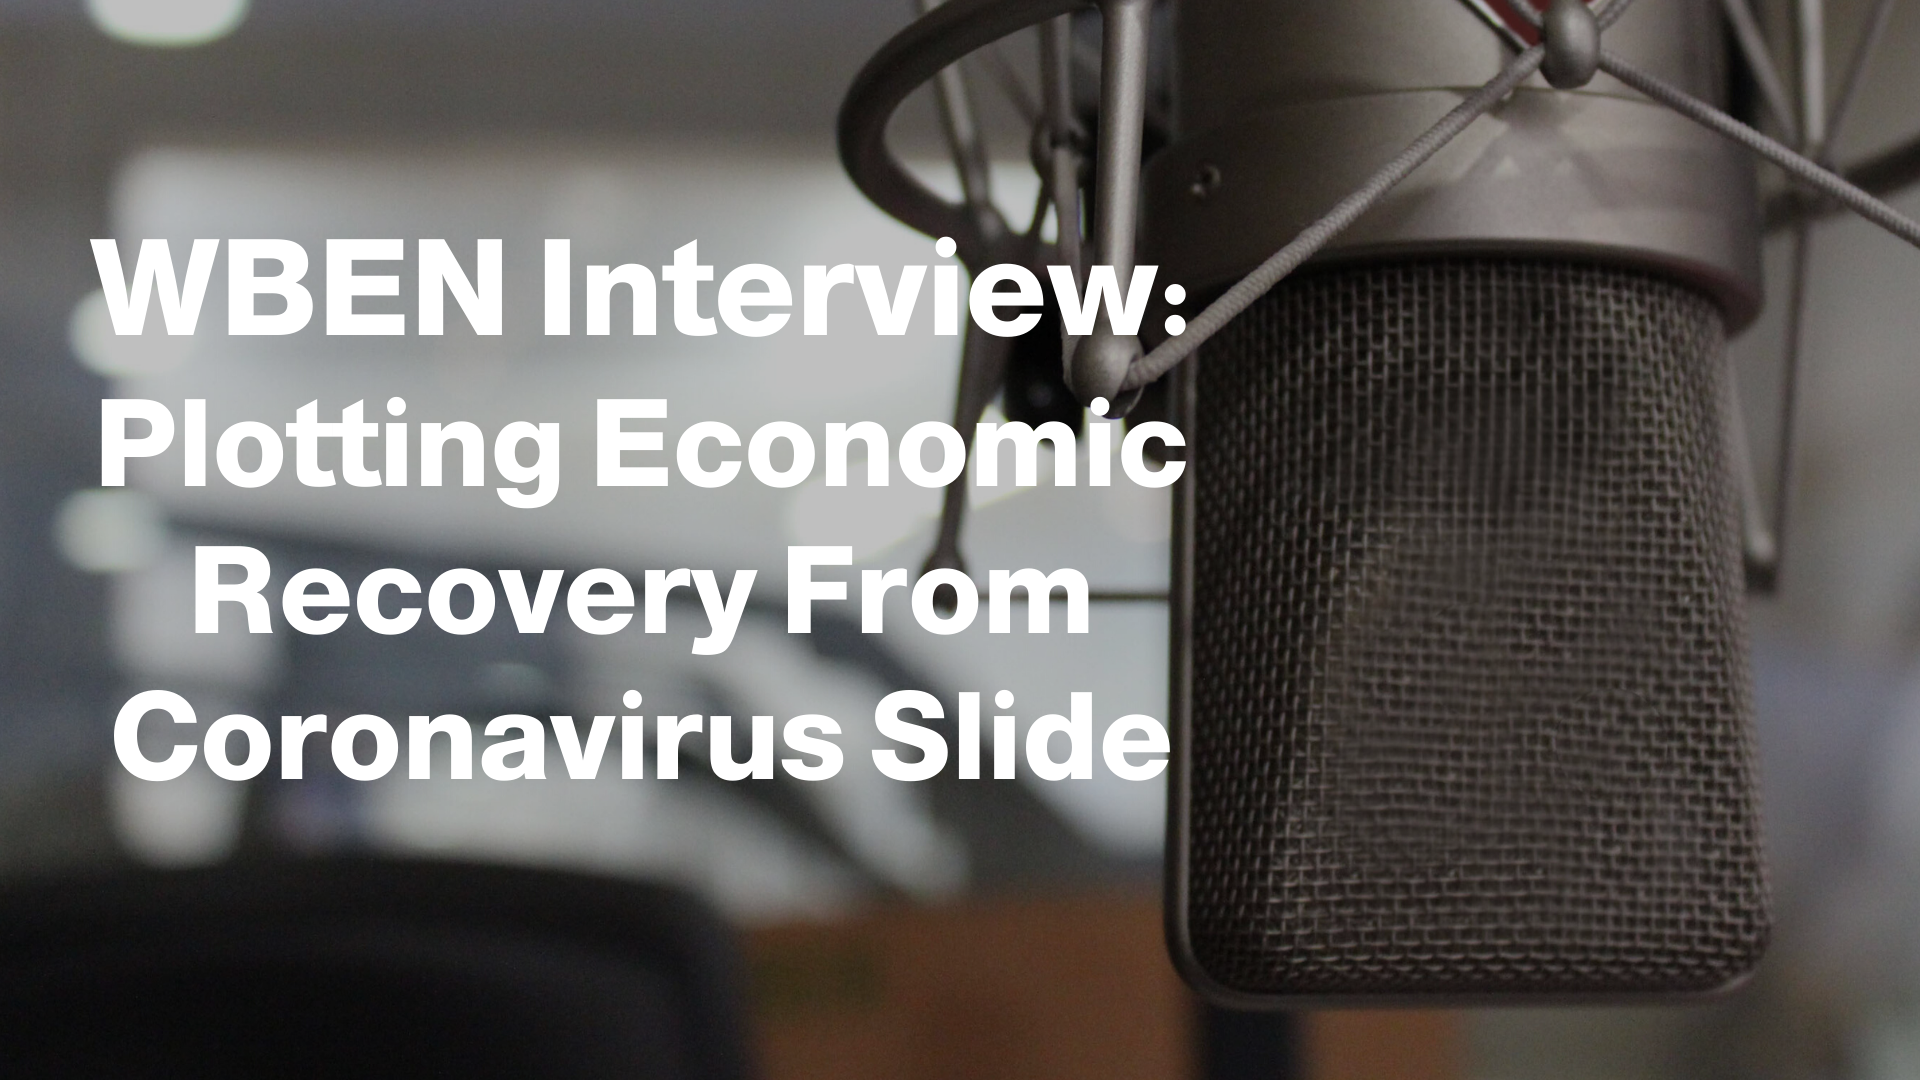 WBEN Interview: Plotting Economic Recovery From Coronavirus Slide